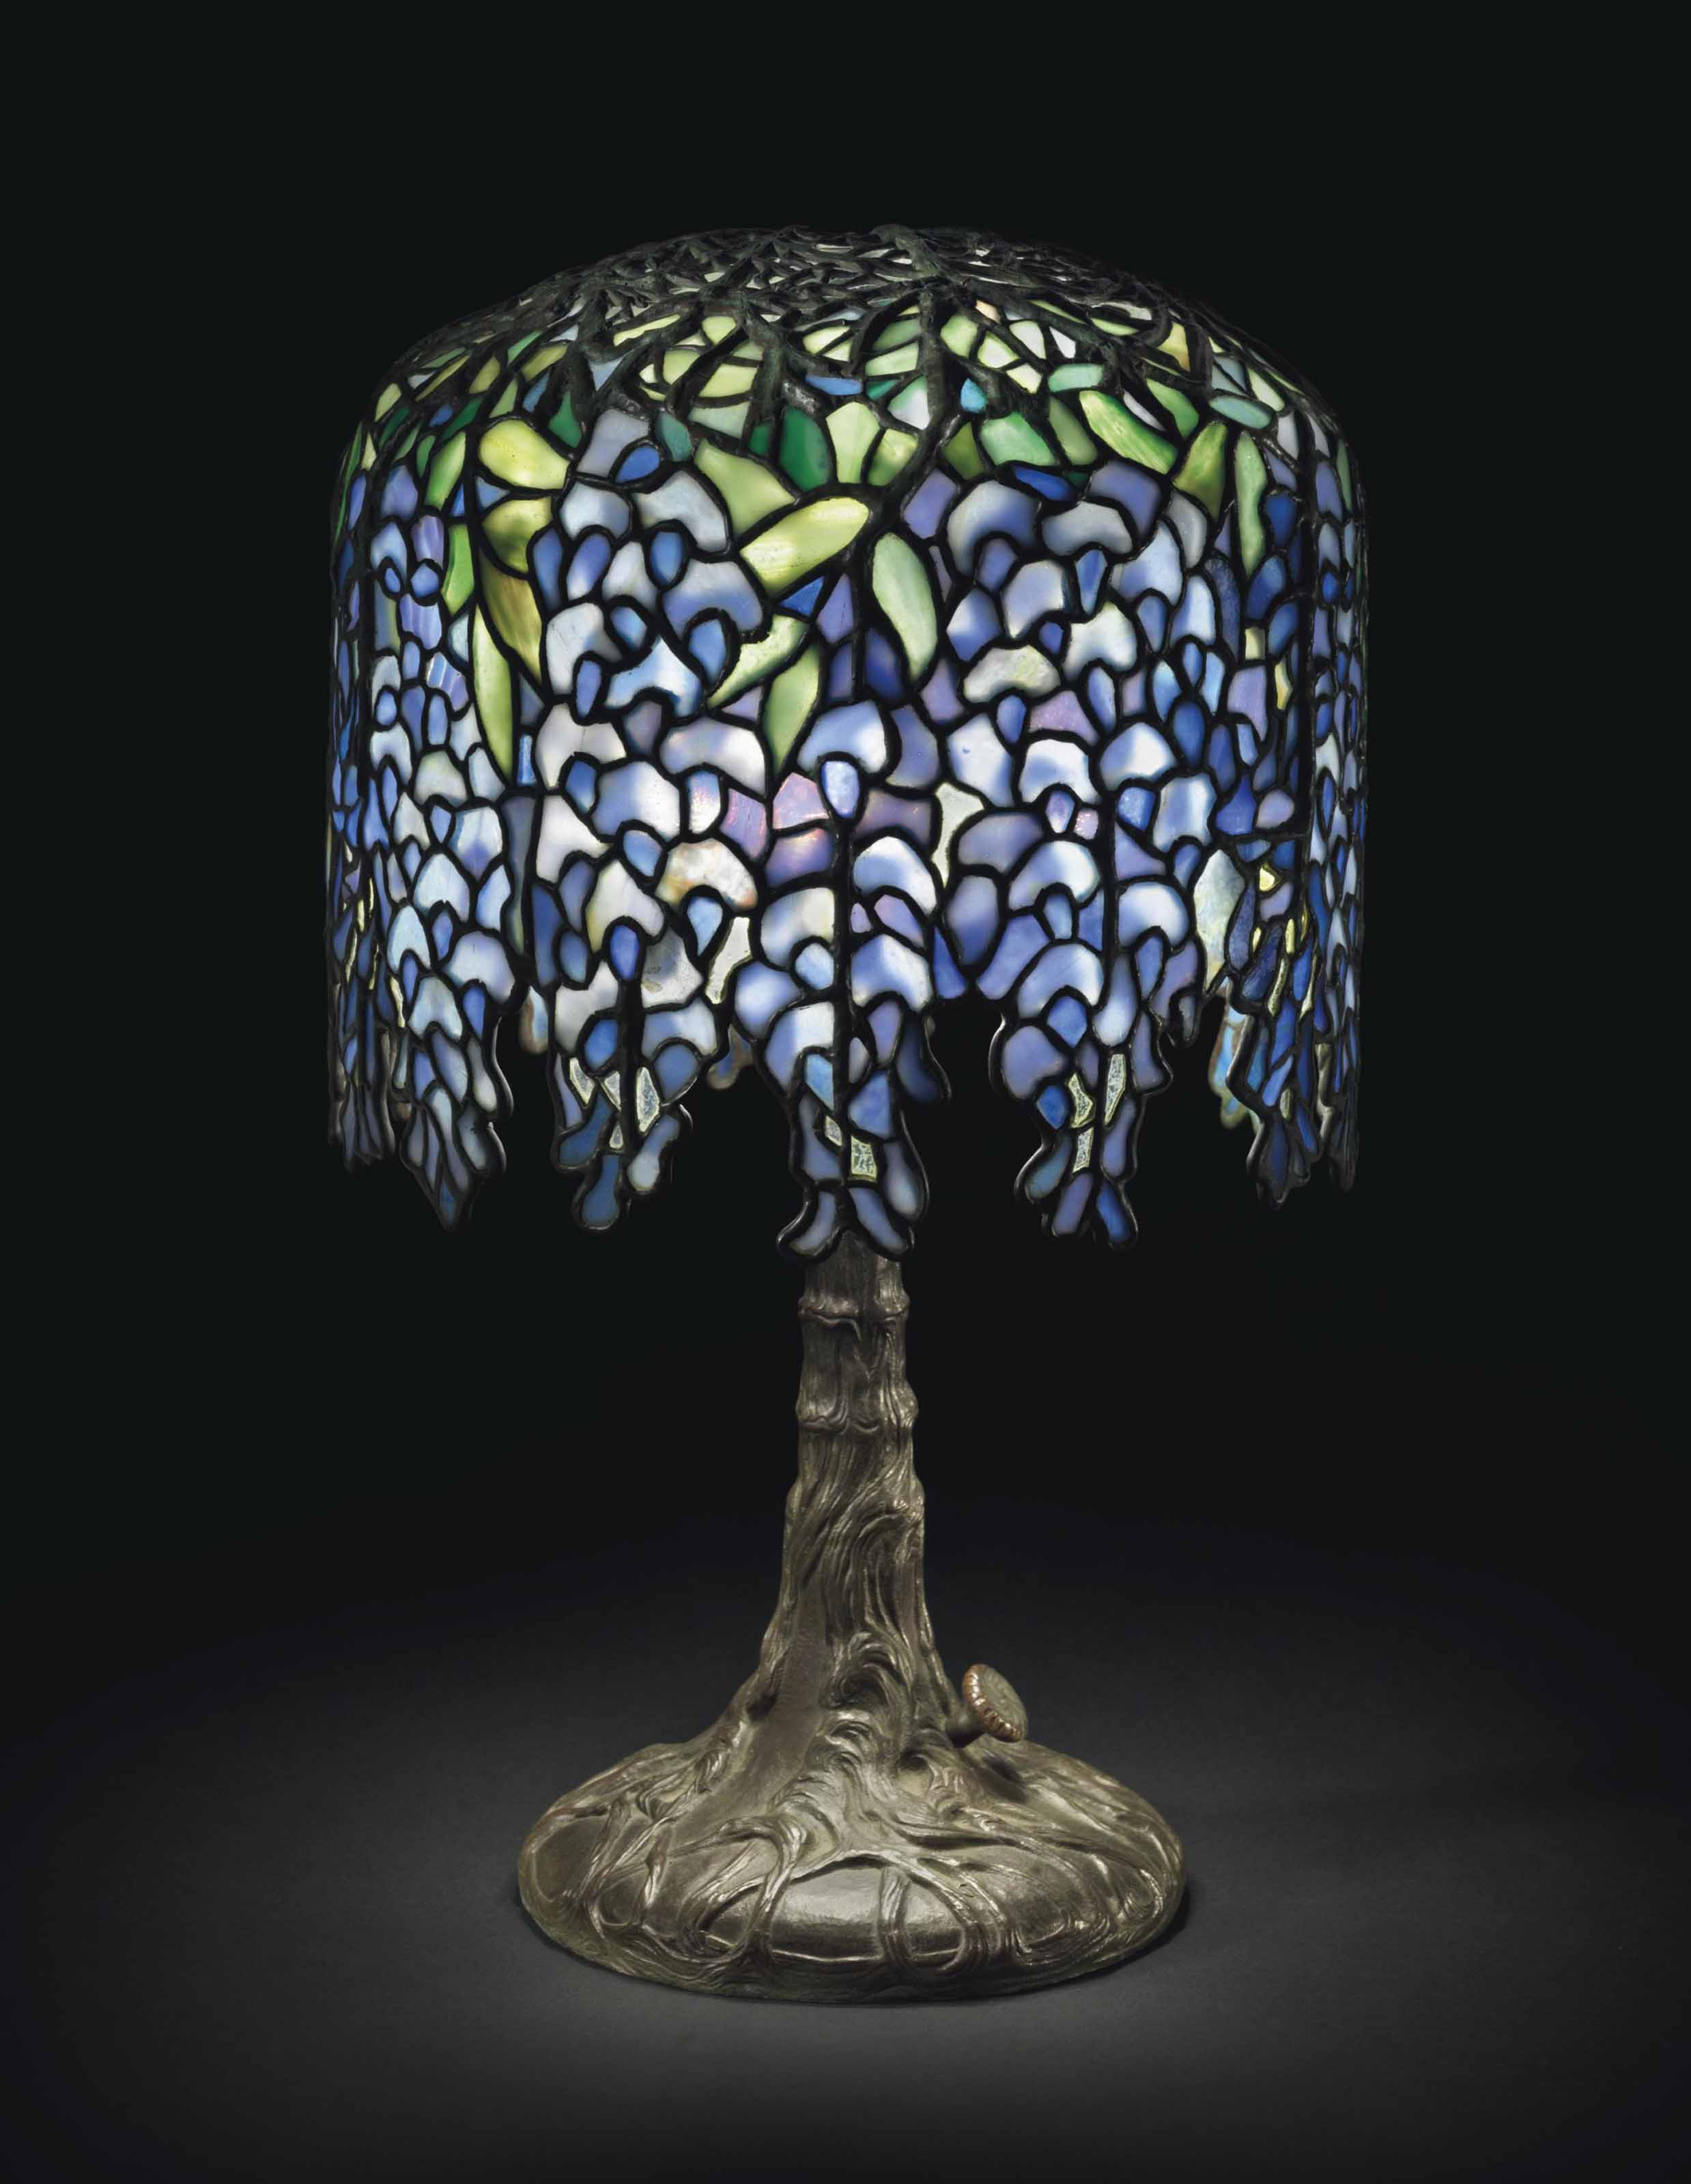 Tiffany studios a pony wisteria table lamp circa 1910 1900s lot 135 mozeypictures Image collections